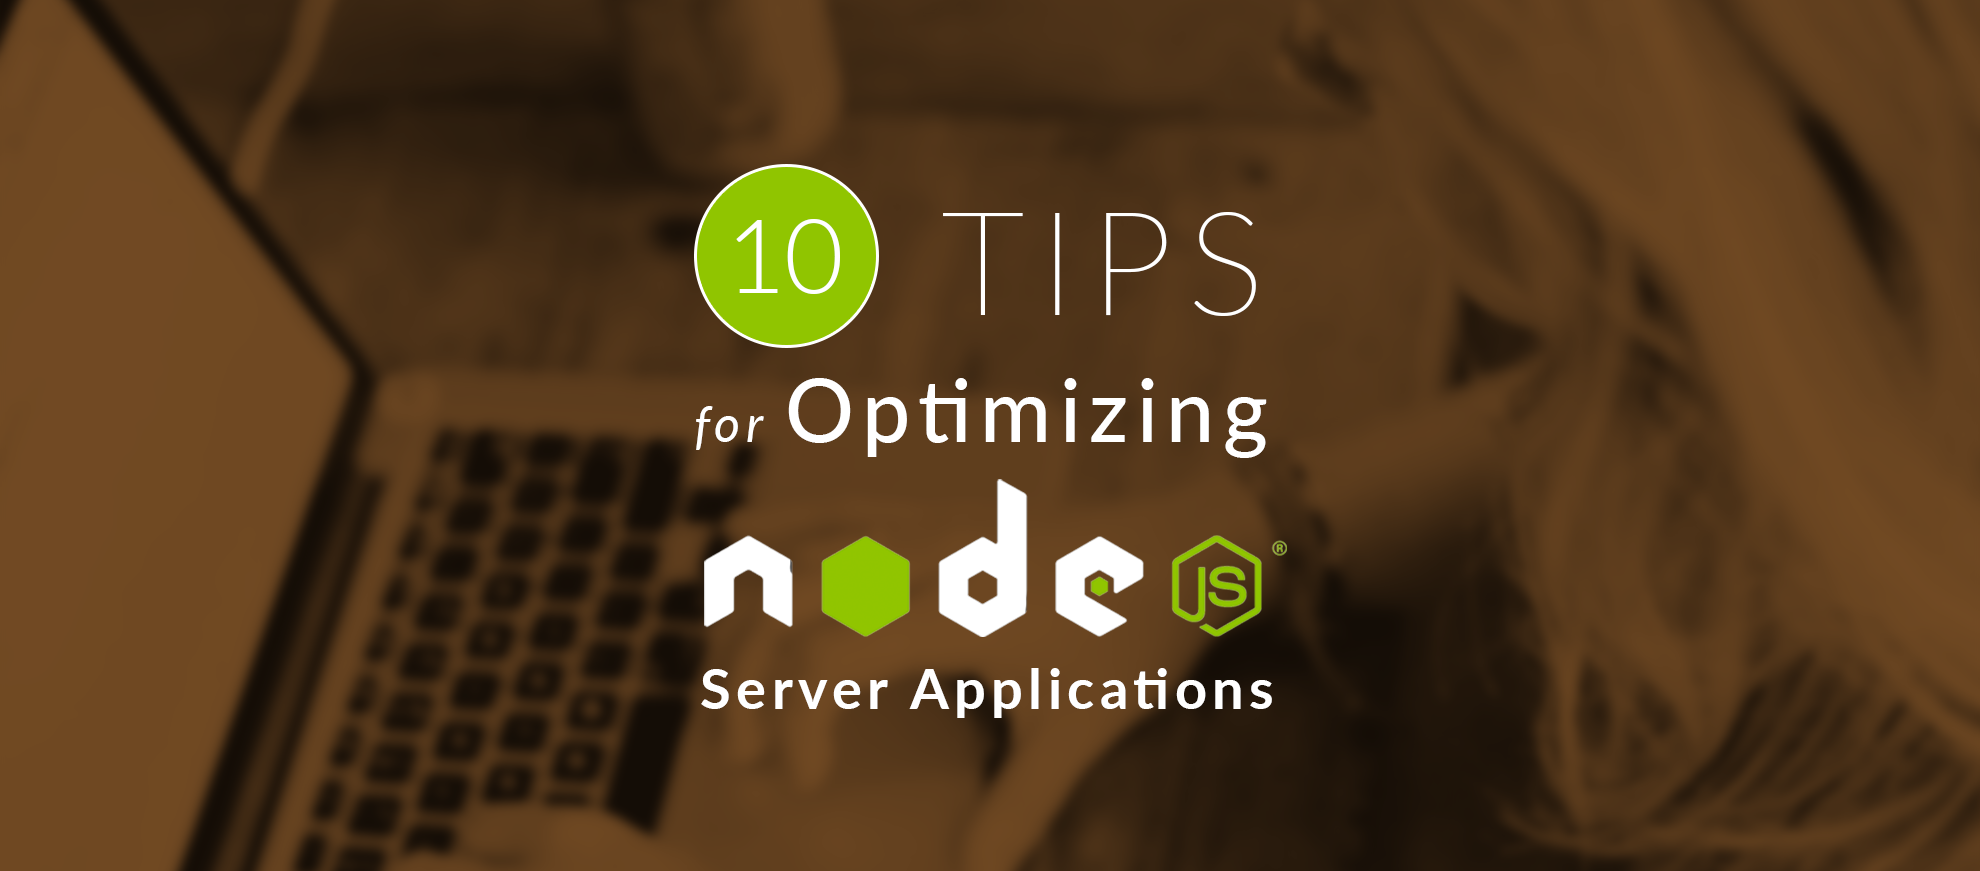 10 Tips For Optimizing Node js Applications | Jscrambler Blog